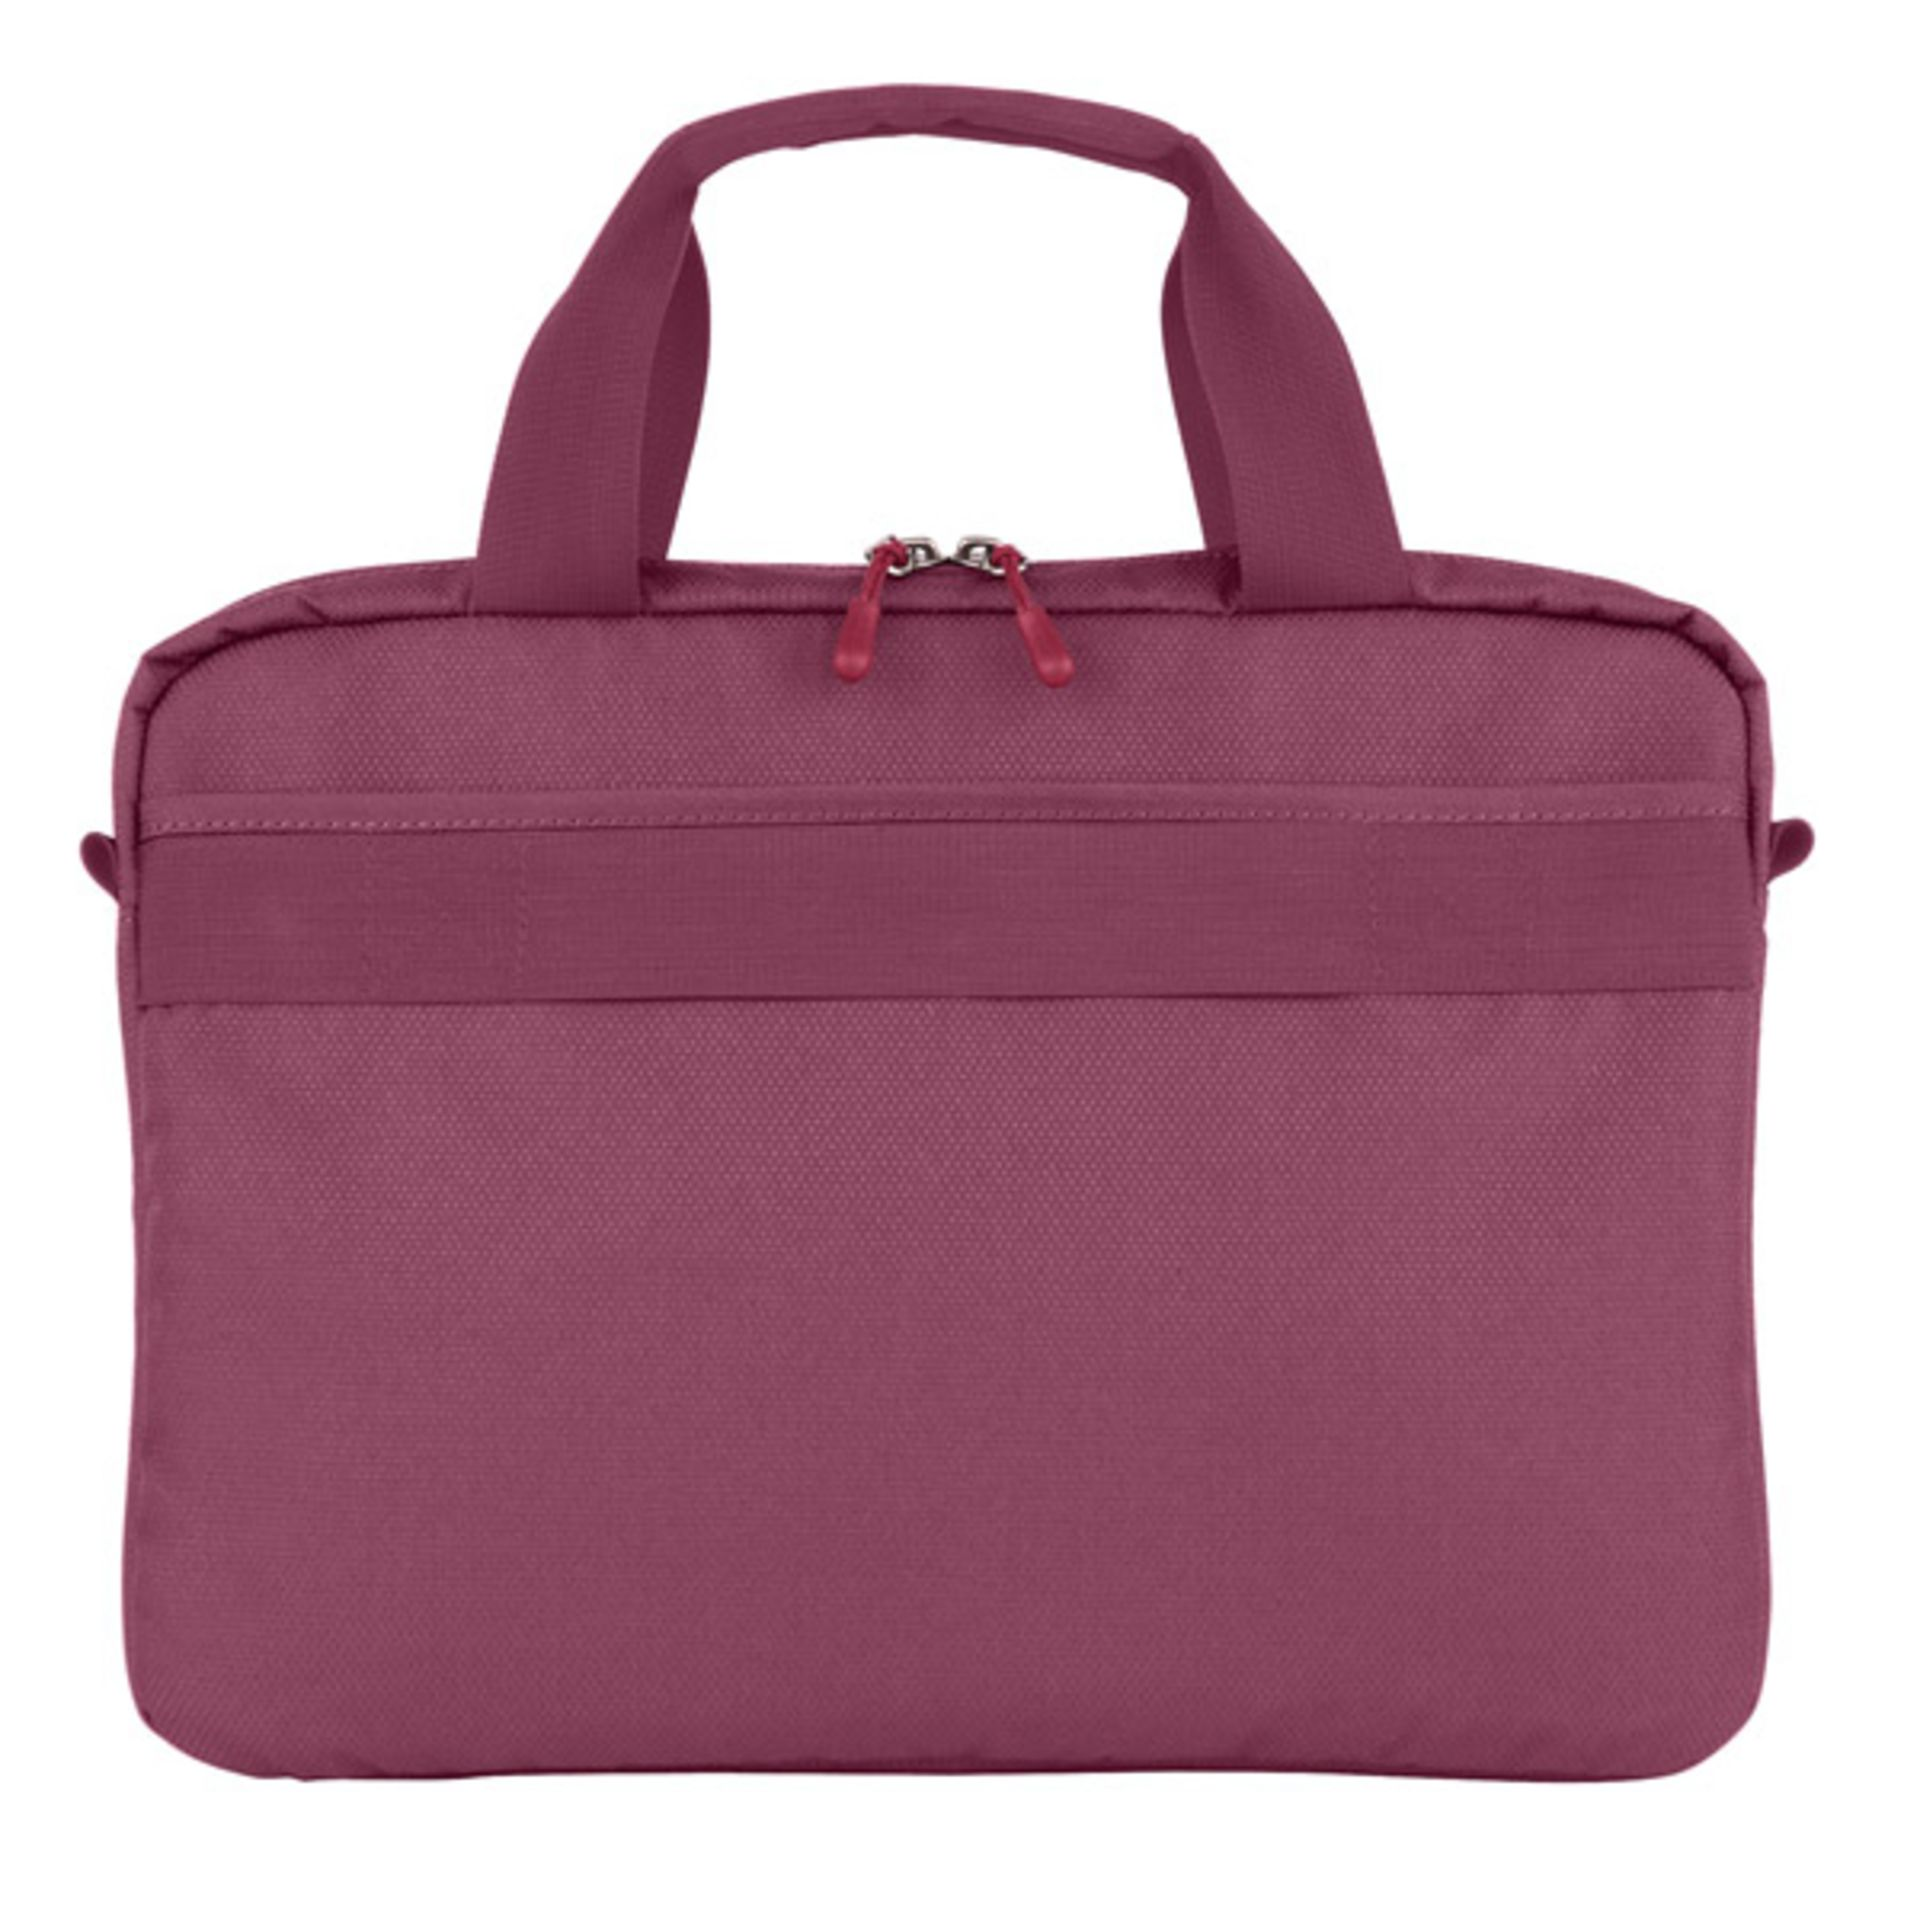 + VAT Brand New Medium Shoulder Bag - RRP £42.99 Amazon Price £33.57 - For Laptop/Tablet Up To - Image 3 of 3